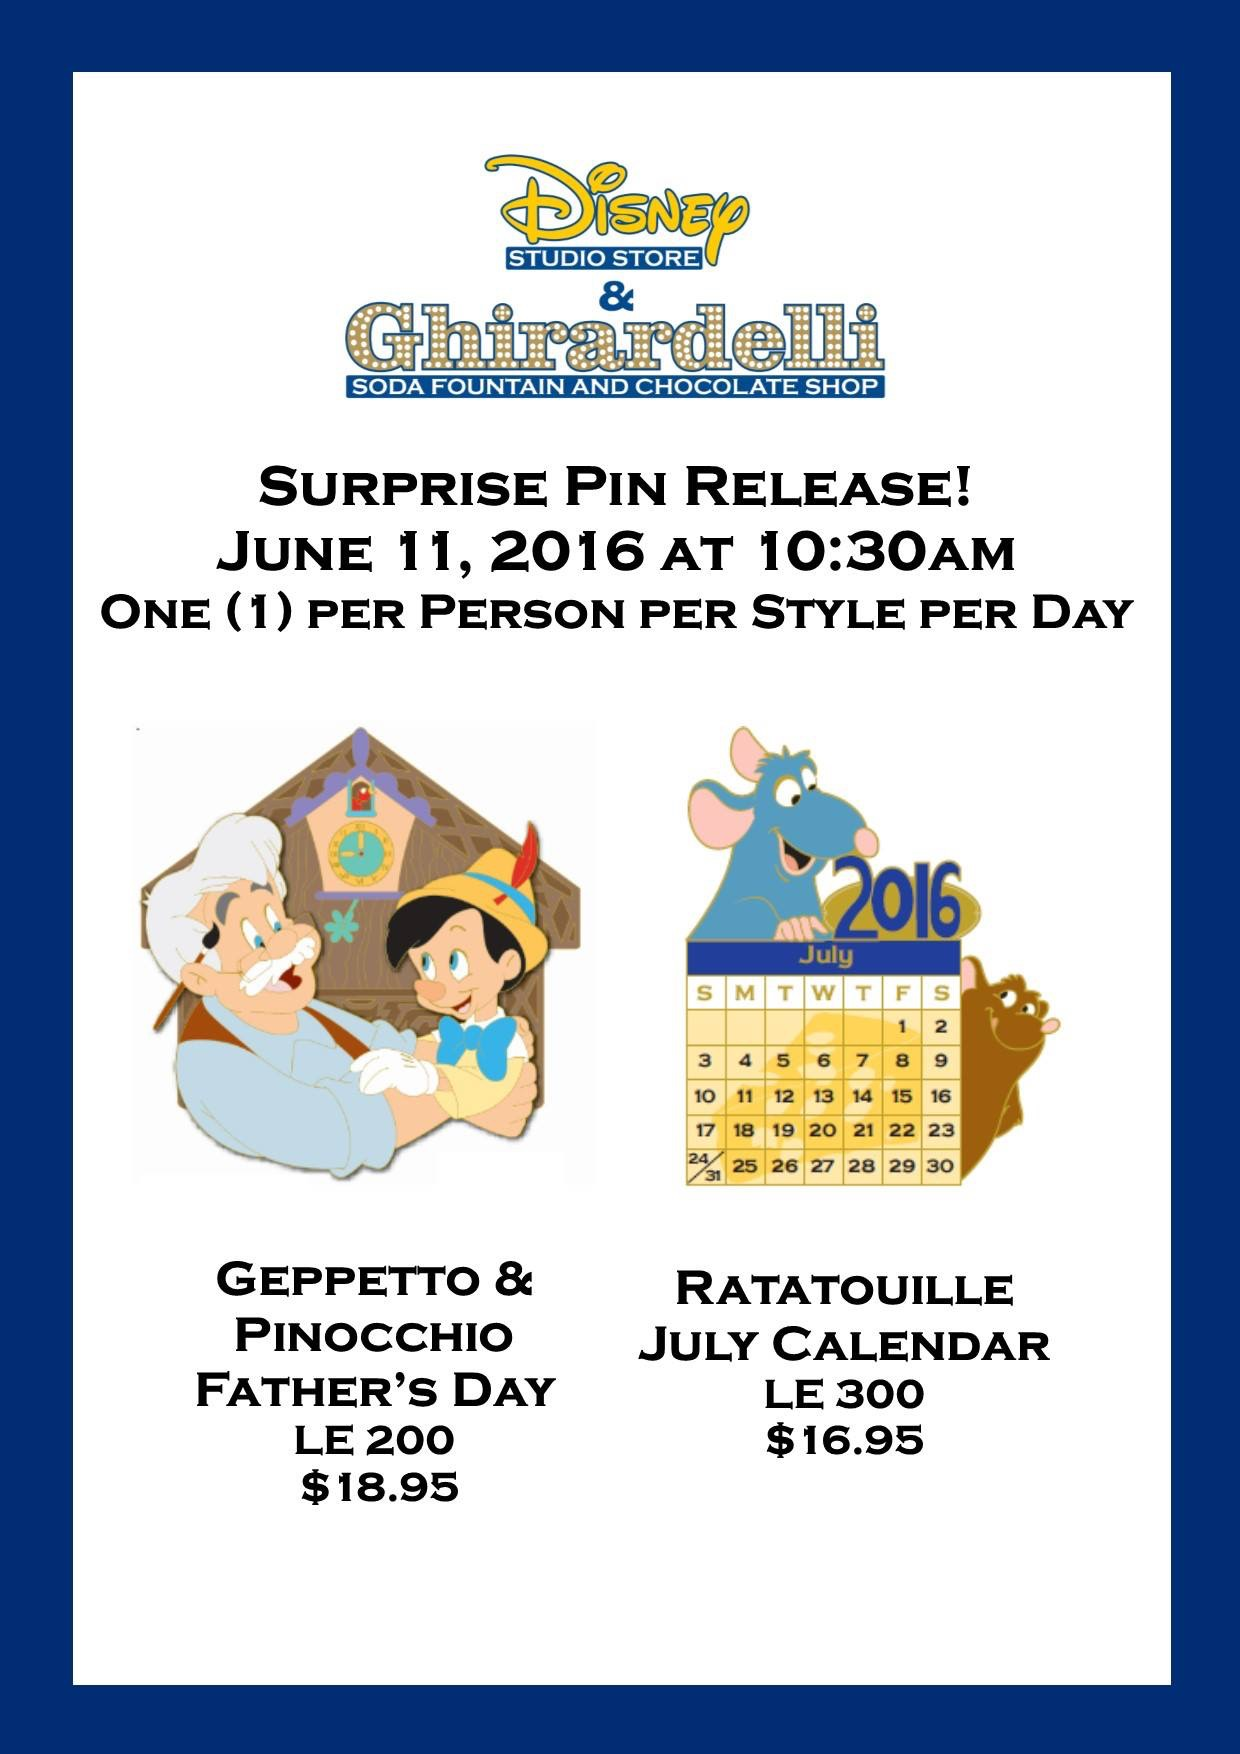 Two Surprise Pins Released Today